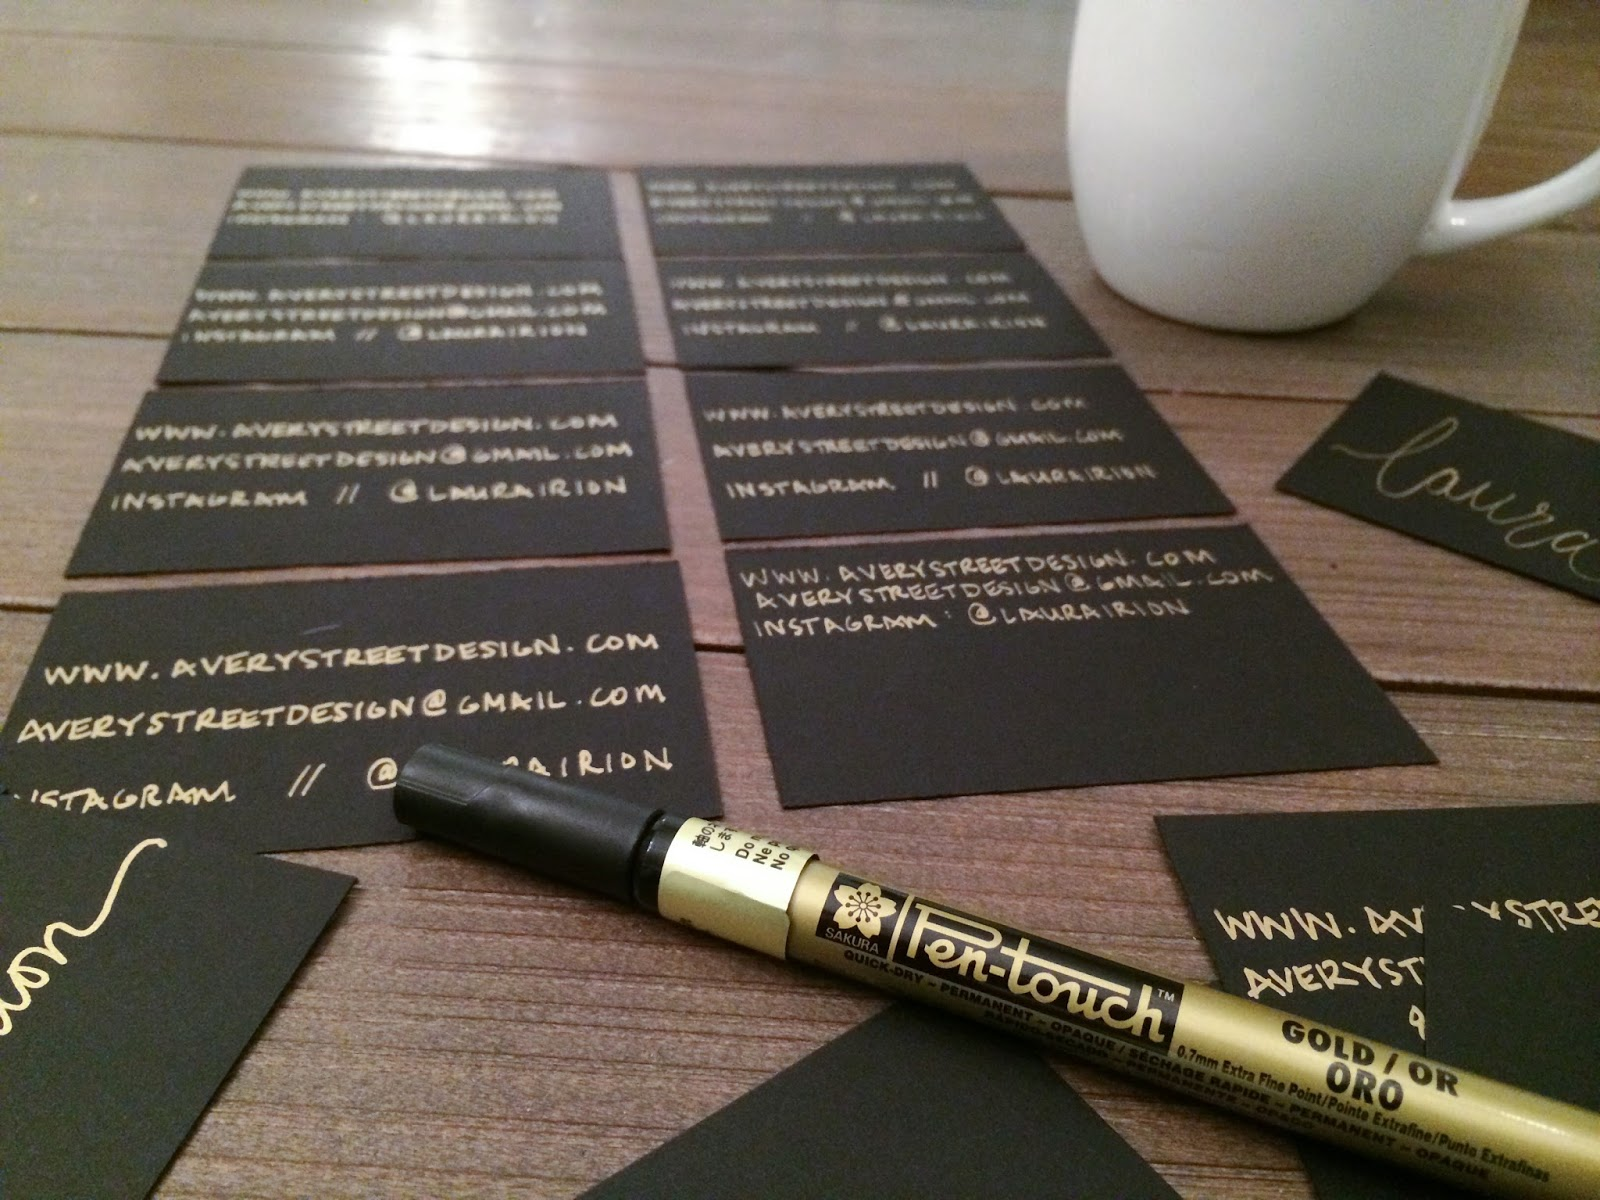 Avery street design blog diy gold calligraphy business cards thats it i realize im going to have to go get real business cards someday but for this occasion they did just fine hopefully this will help you out in magicingreecefo Images